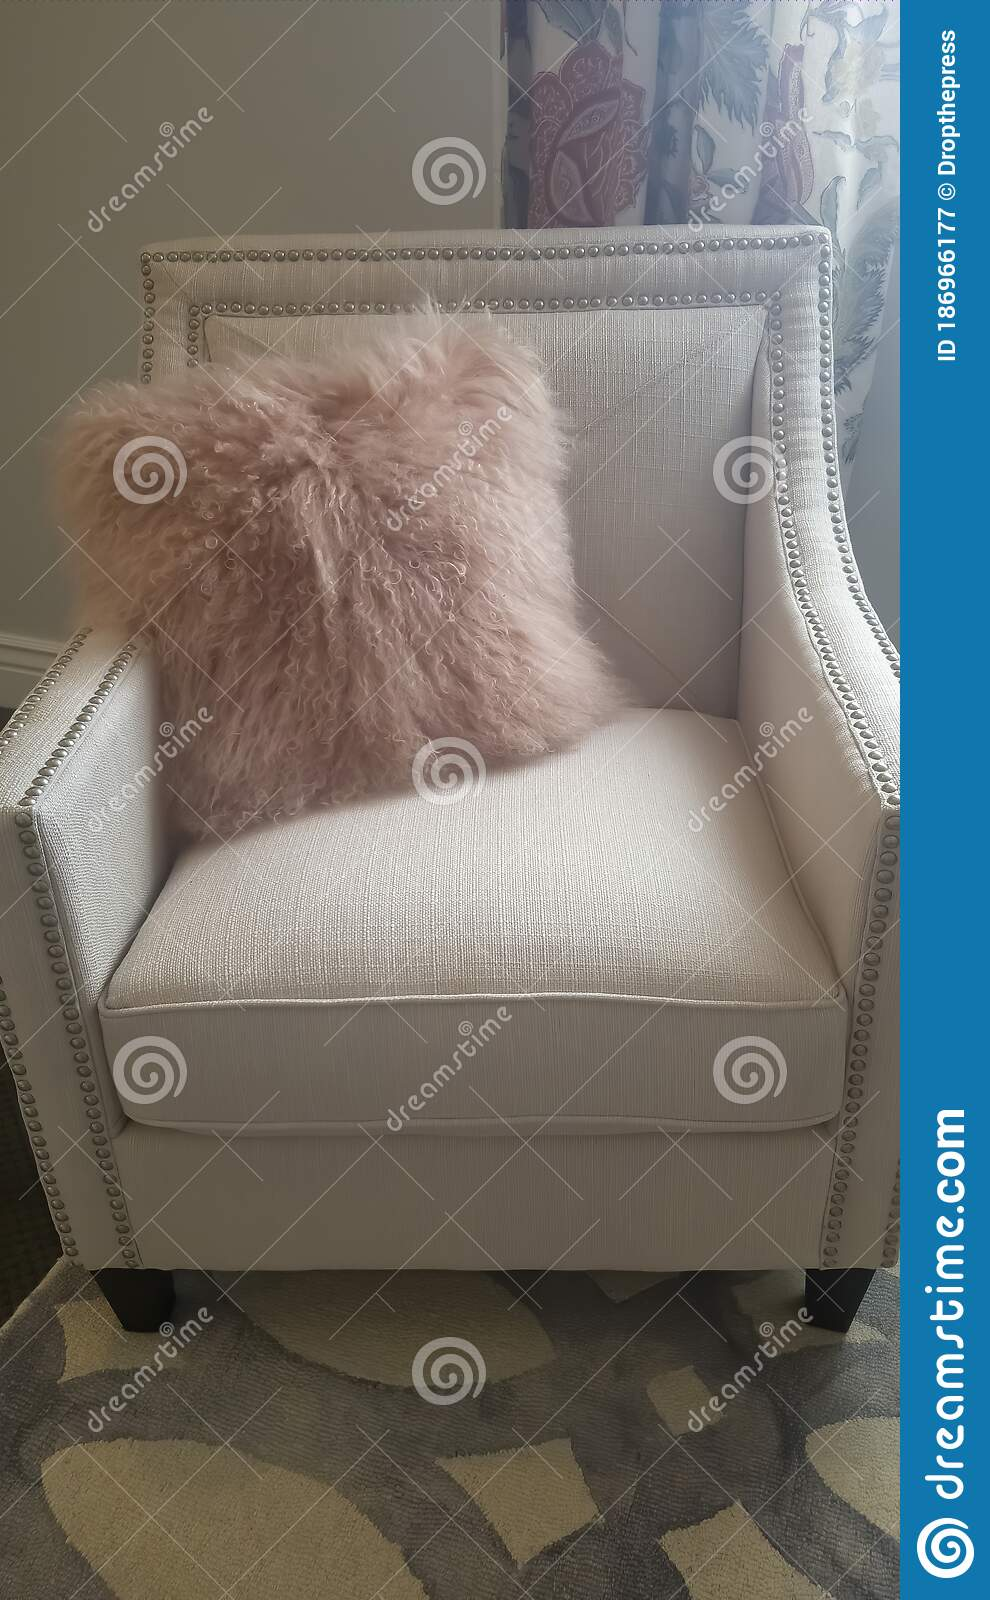 vertical bedroom interior with faux fur throw pillow on a white upholstered armchair stock image image of decorative chair 186966177